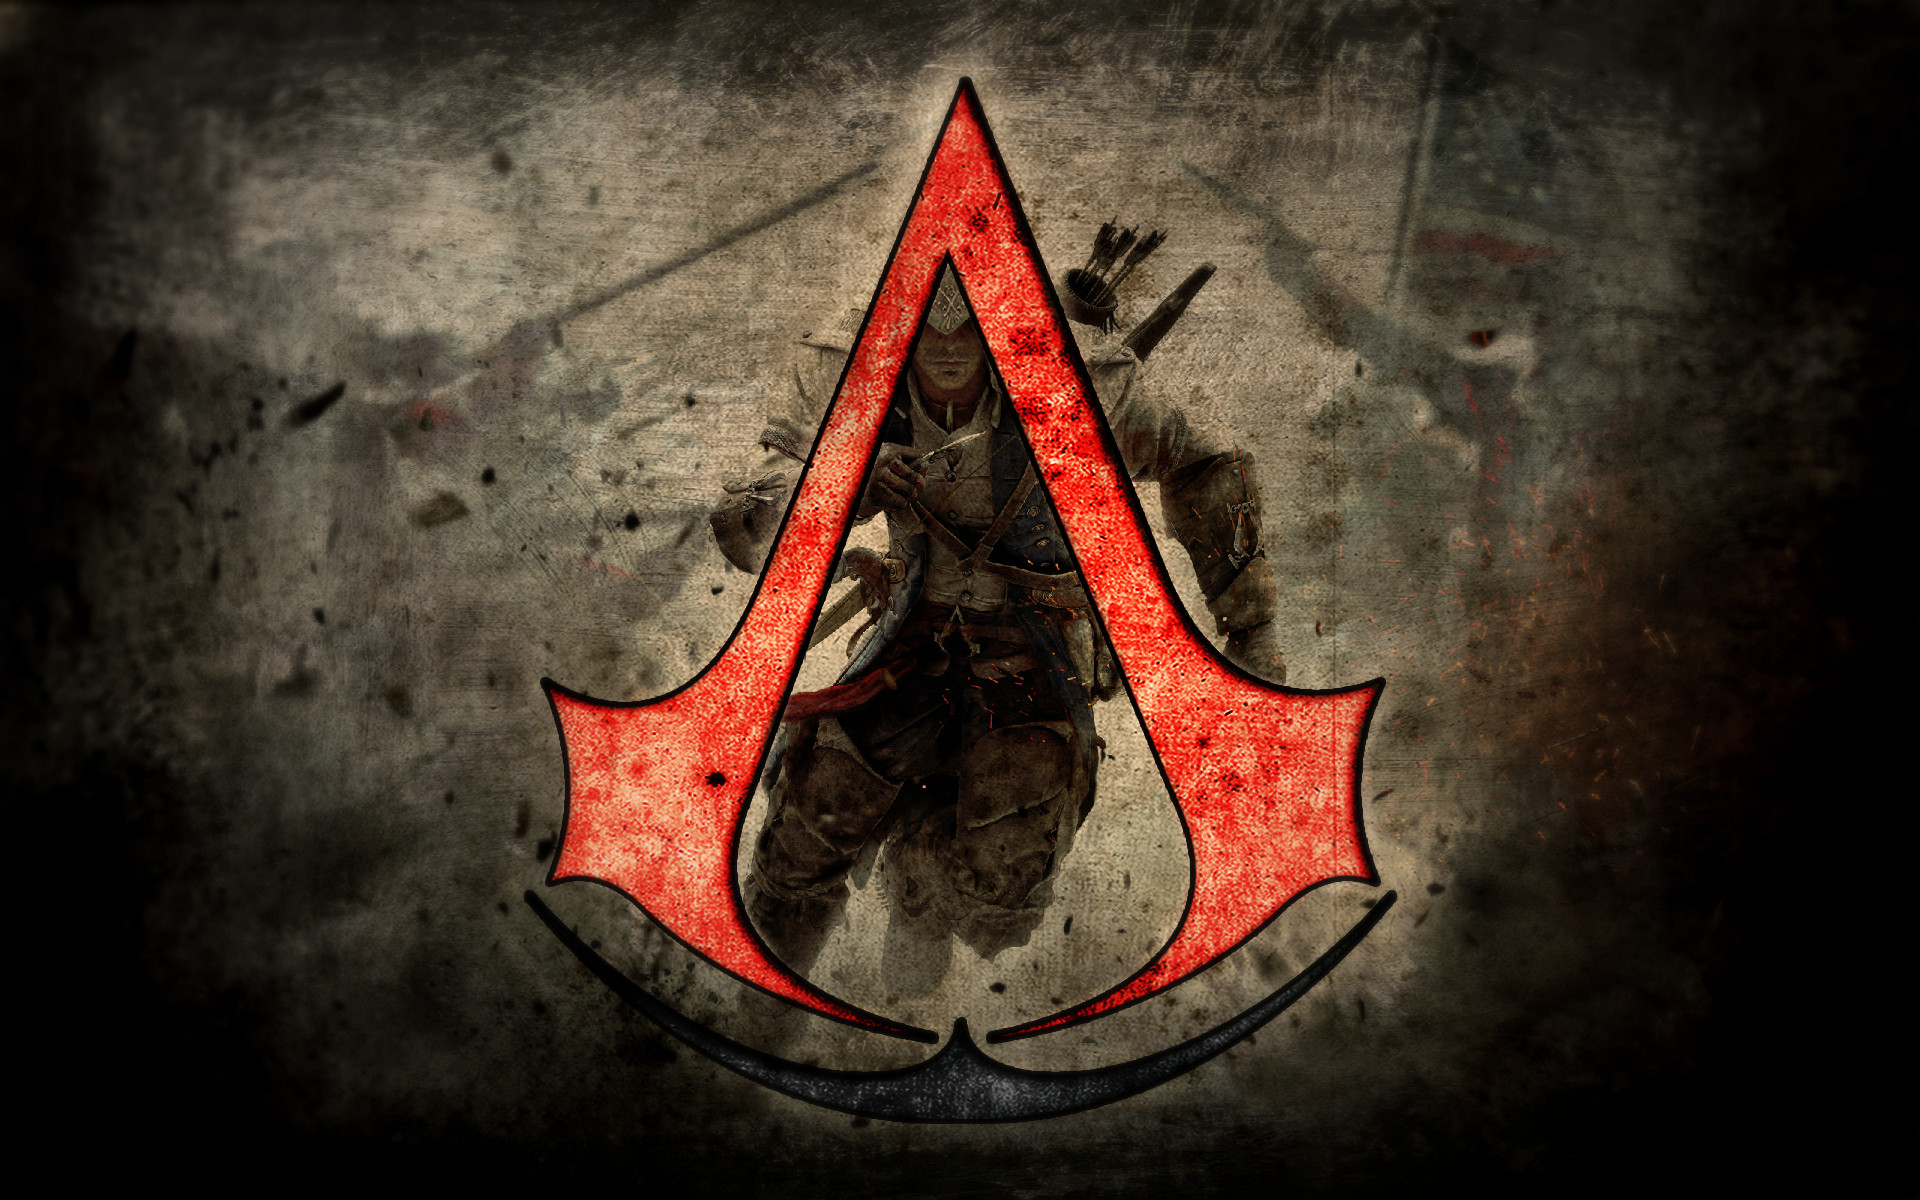 de pantalla de Assassins Creed III Wallpapers de Assassins Creed III 1920x1200